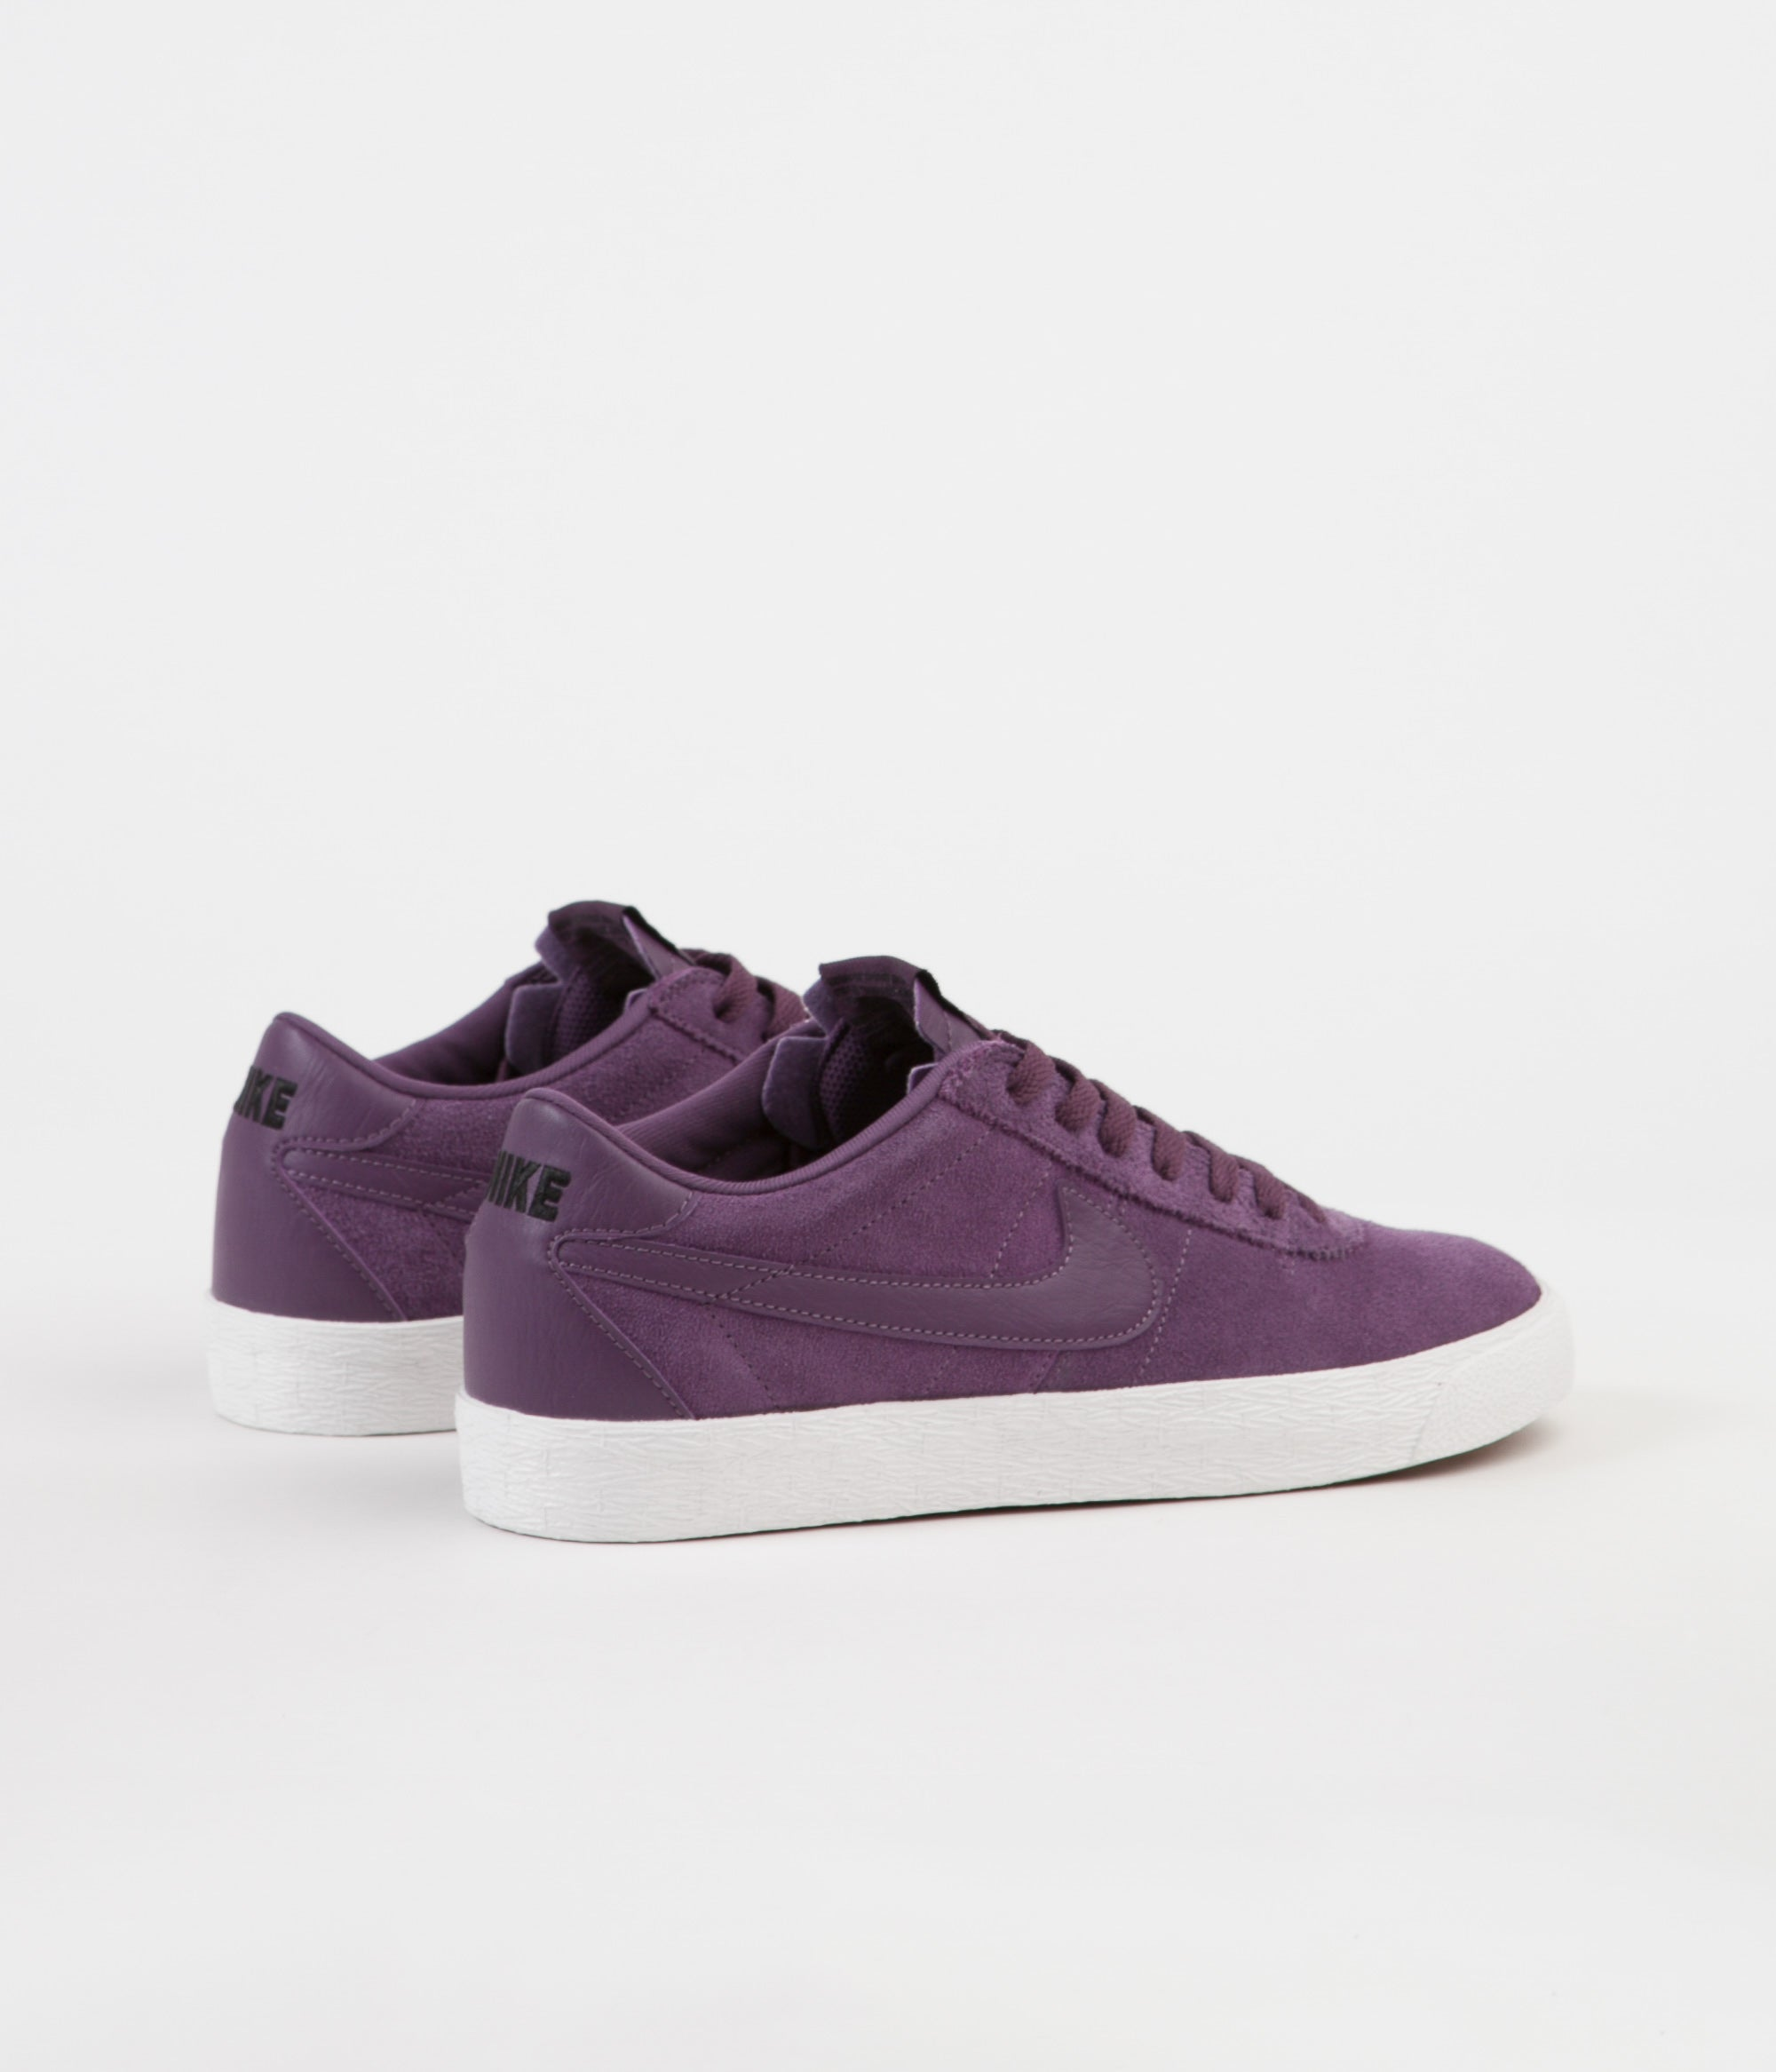 1ad78c93f5ee ... Nike SB Bruin Premium SE Shoes - Pro Purple   Pro Purple - Summit White  ...